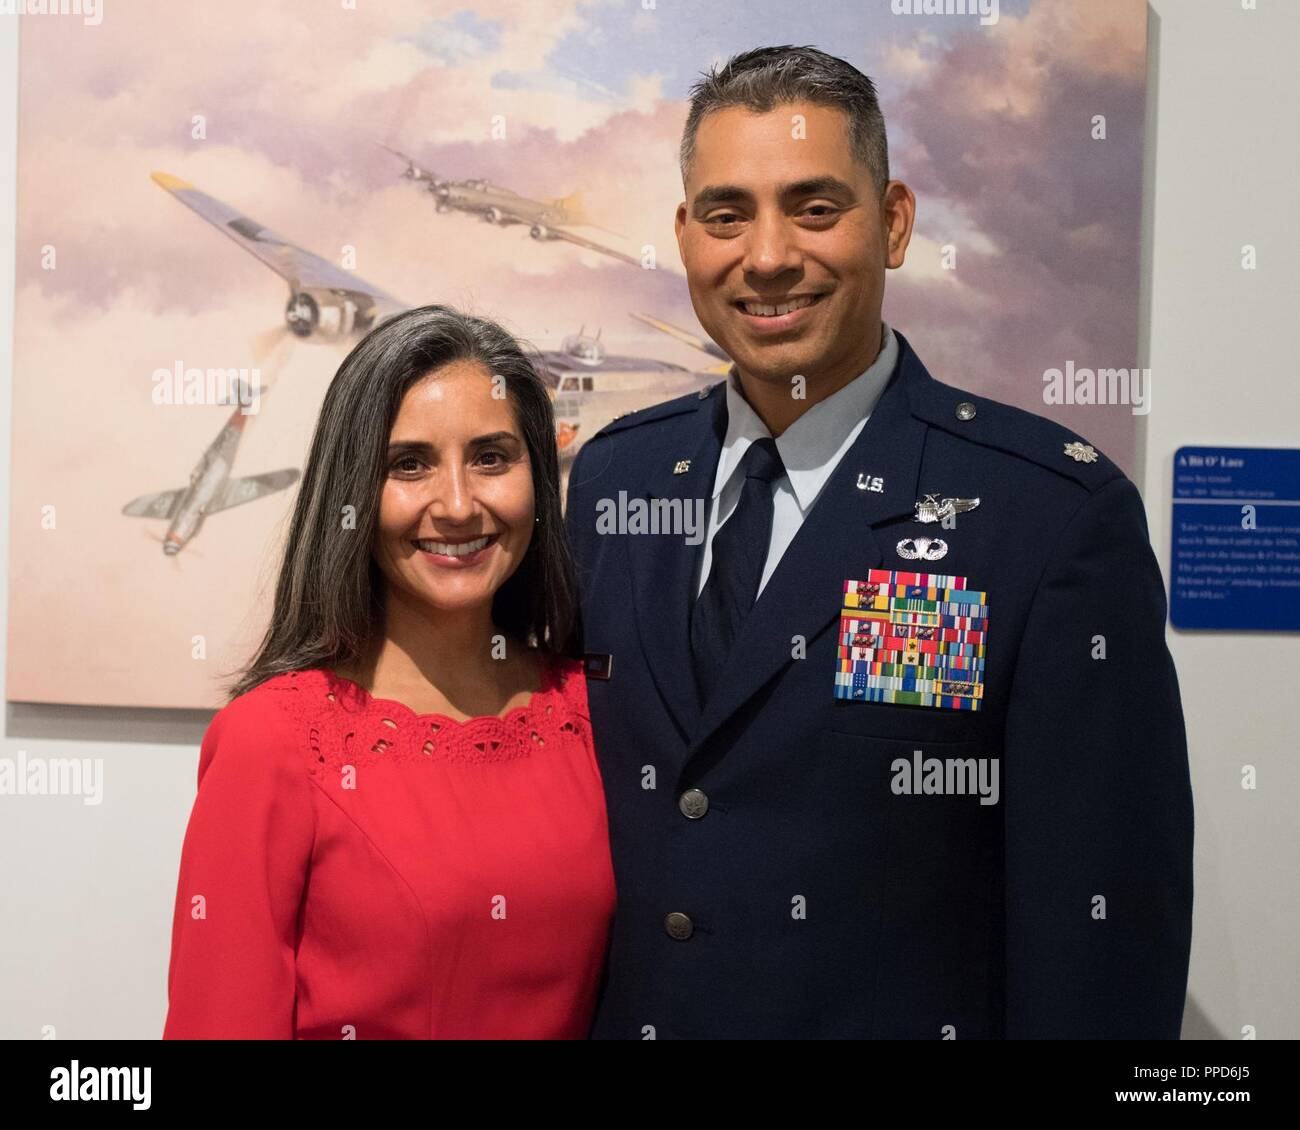 Lt  Col  David Arriola promotes to the rank of Col  at Barksdale Air